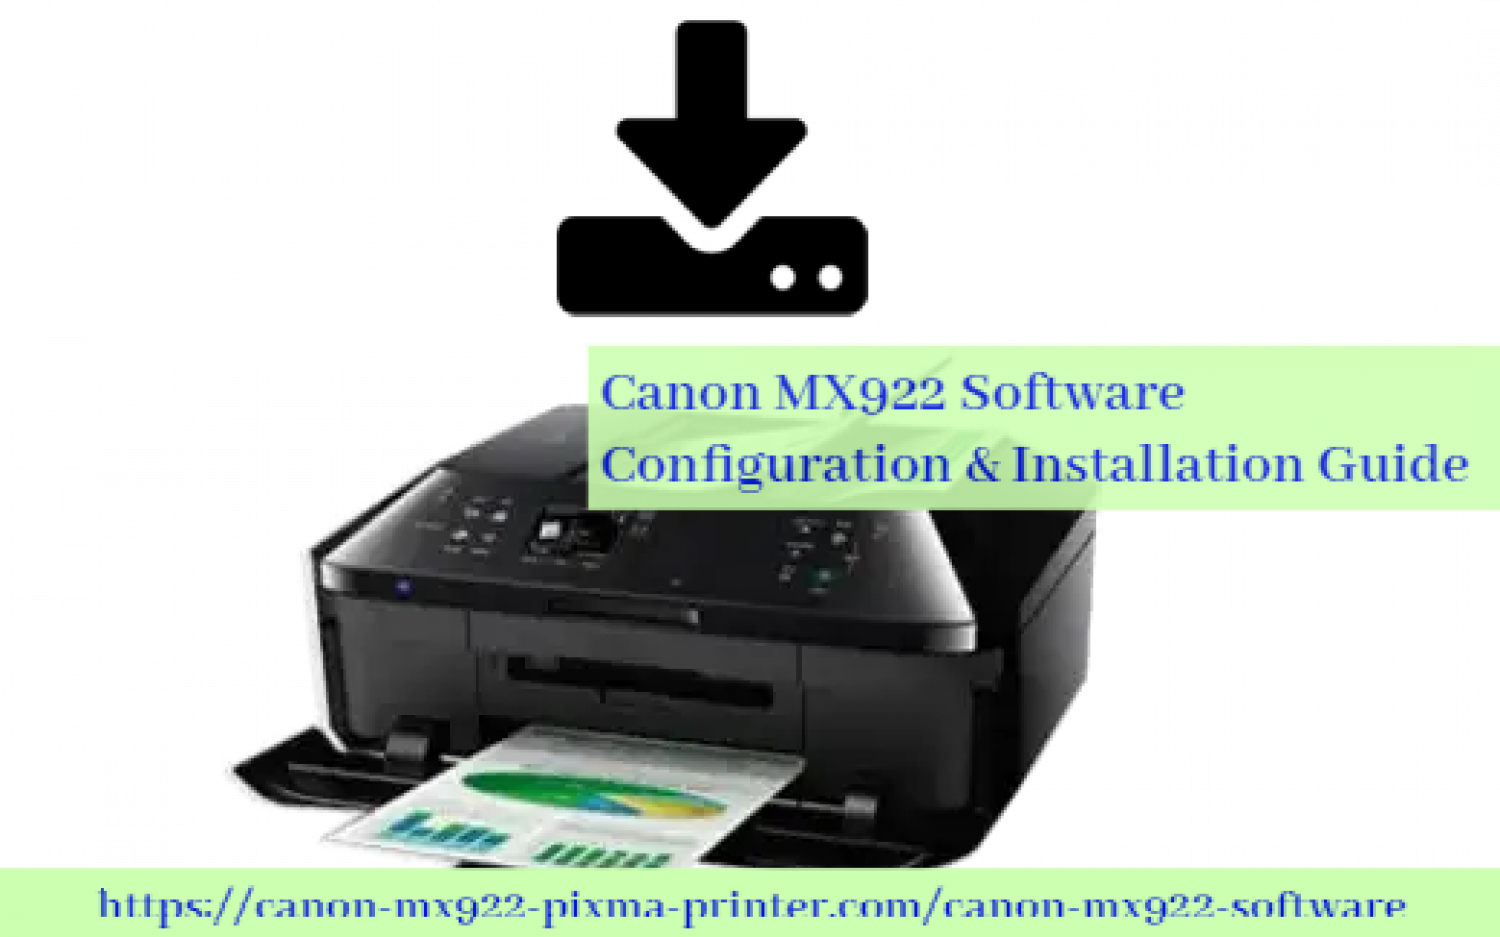 Canon MX922 Software - Configuration & Installation Guide Infographic